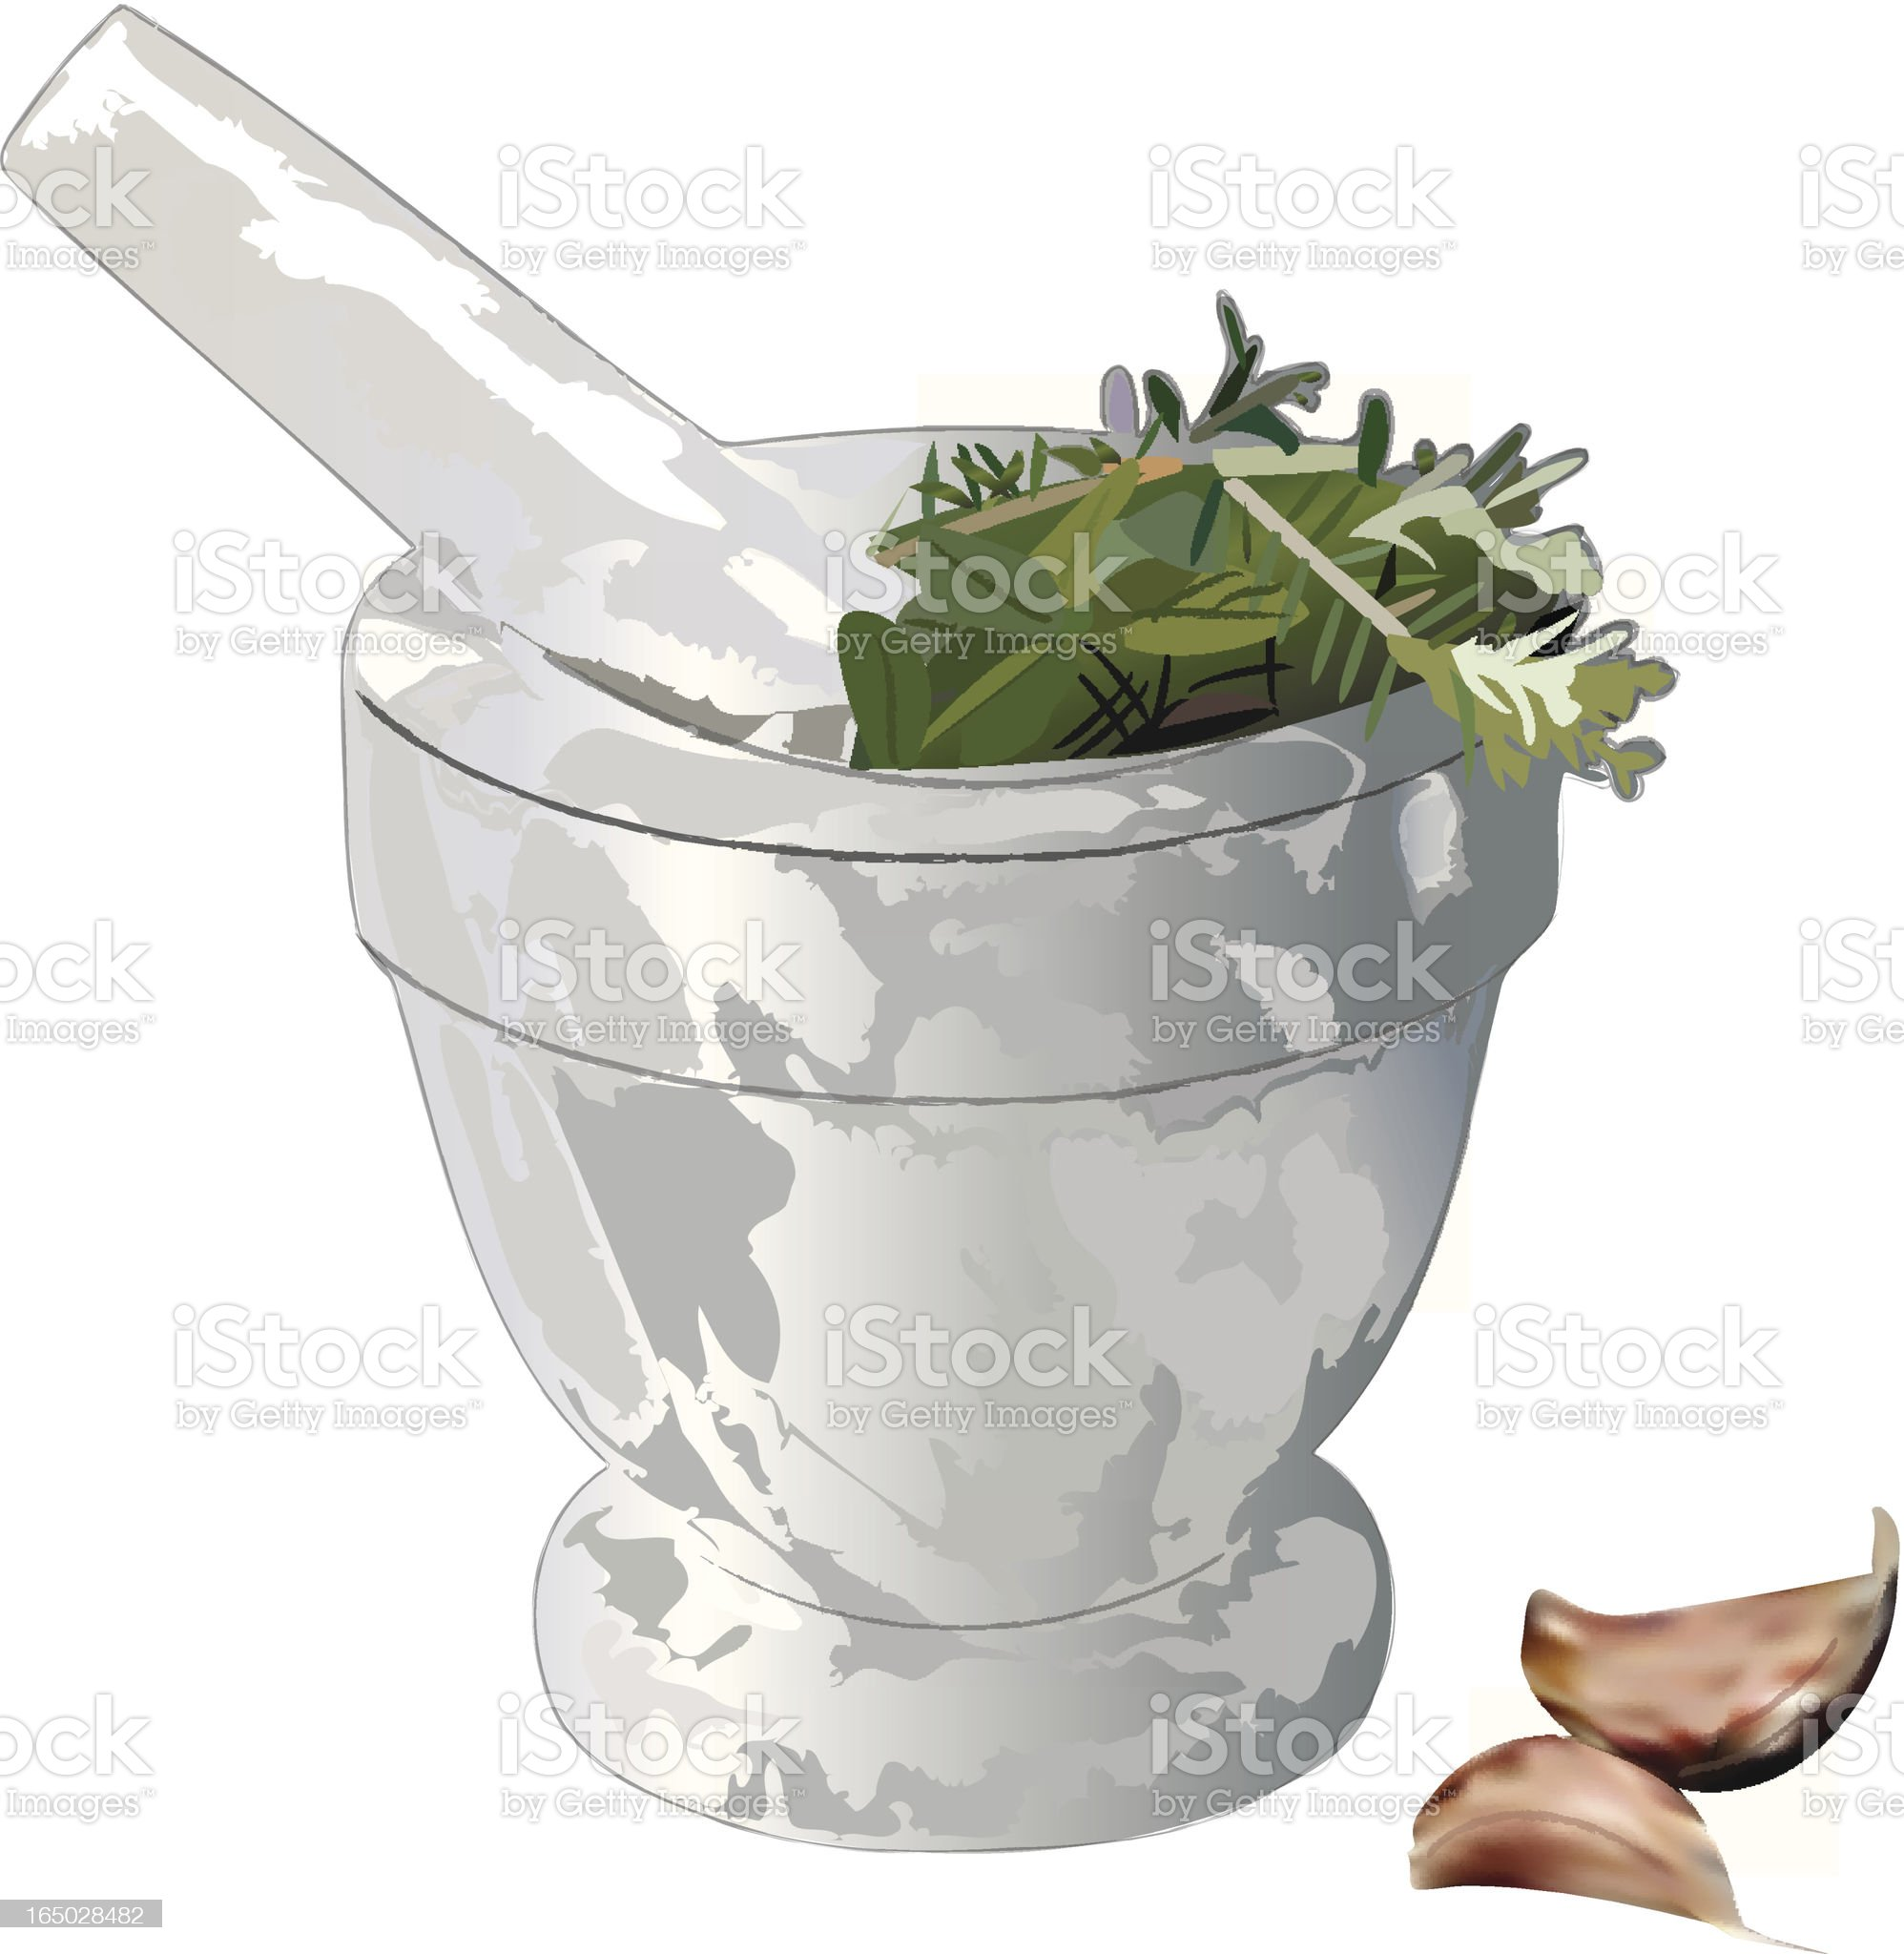 Mortar and Pestle with herbs, garlic royalty-free stock vector art